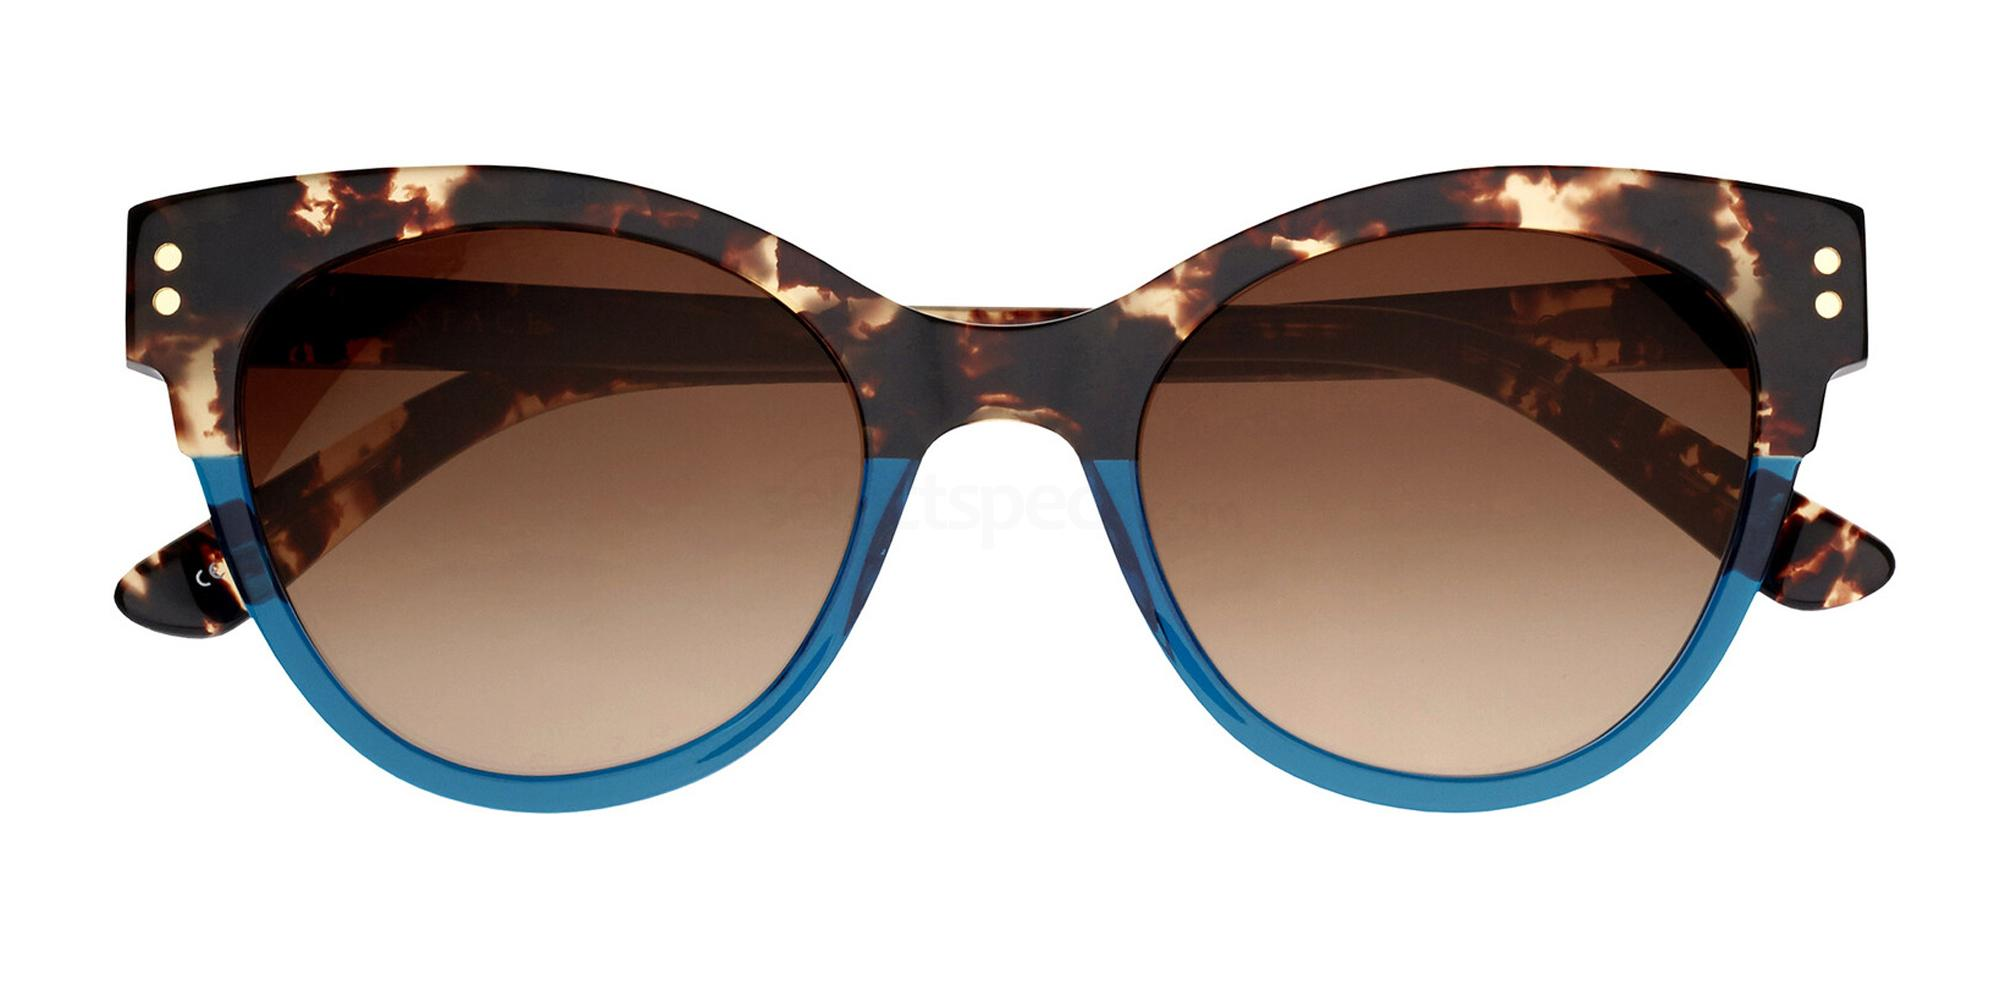 5445 IF9789 Sunglasses, Inface in Love